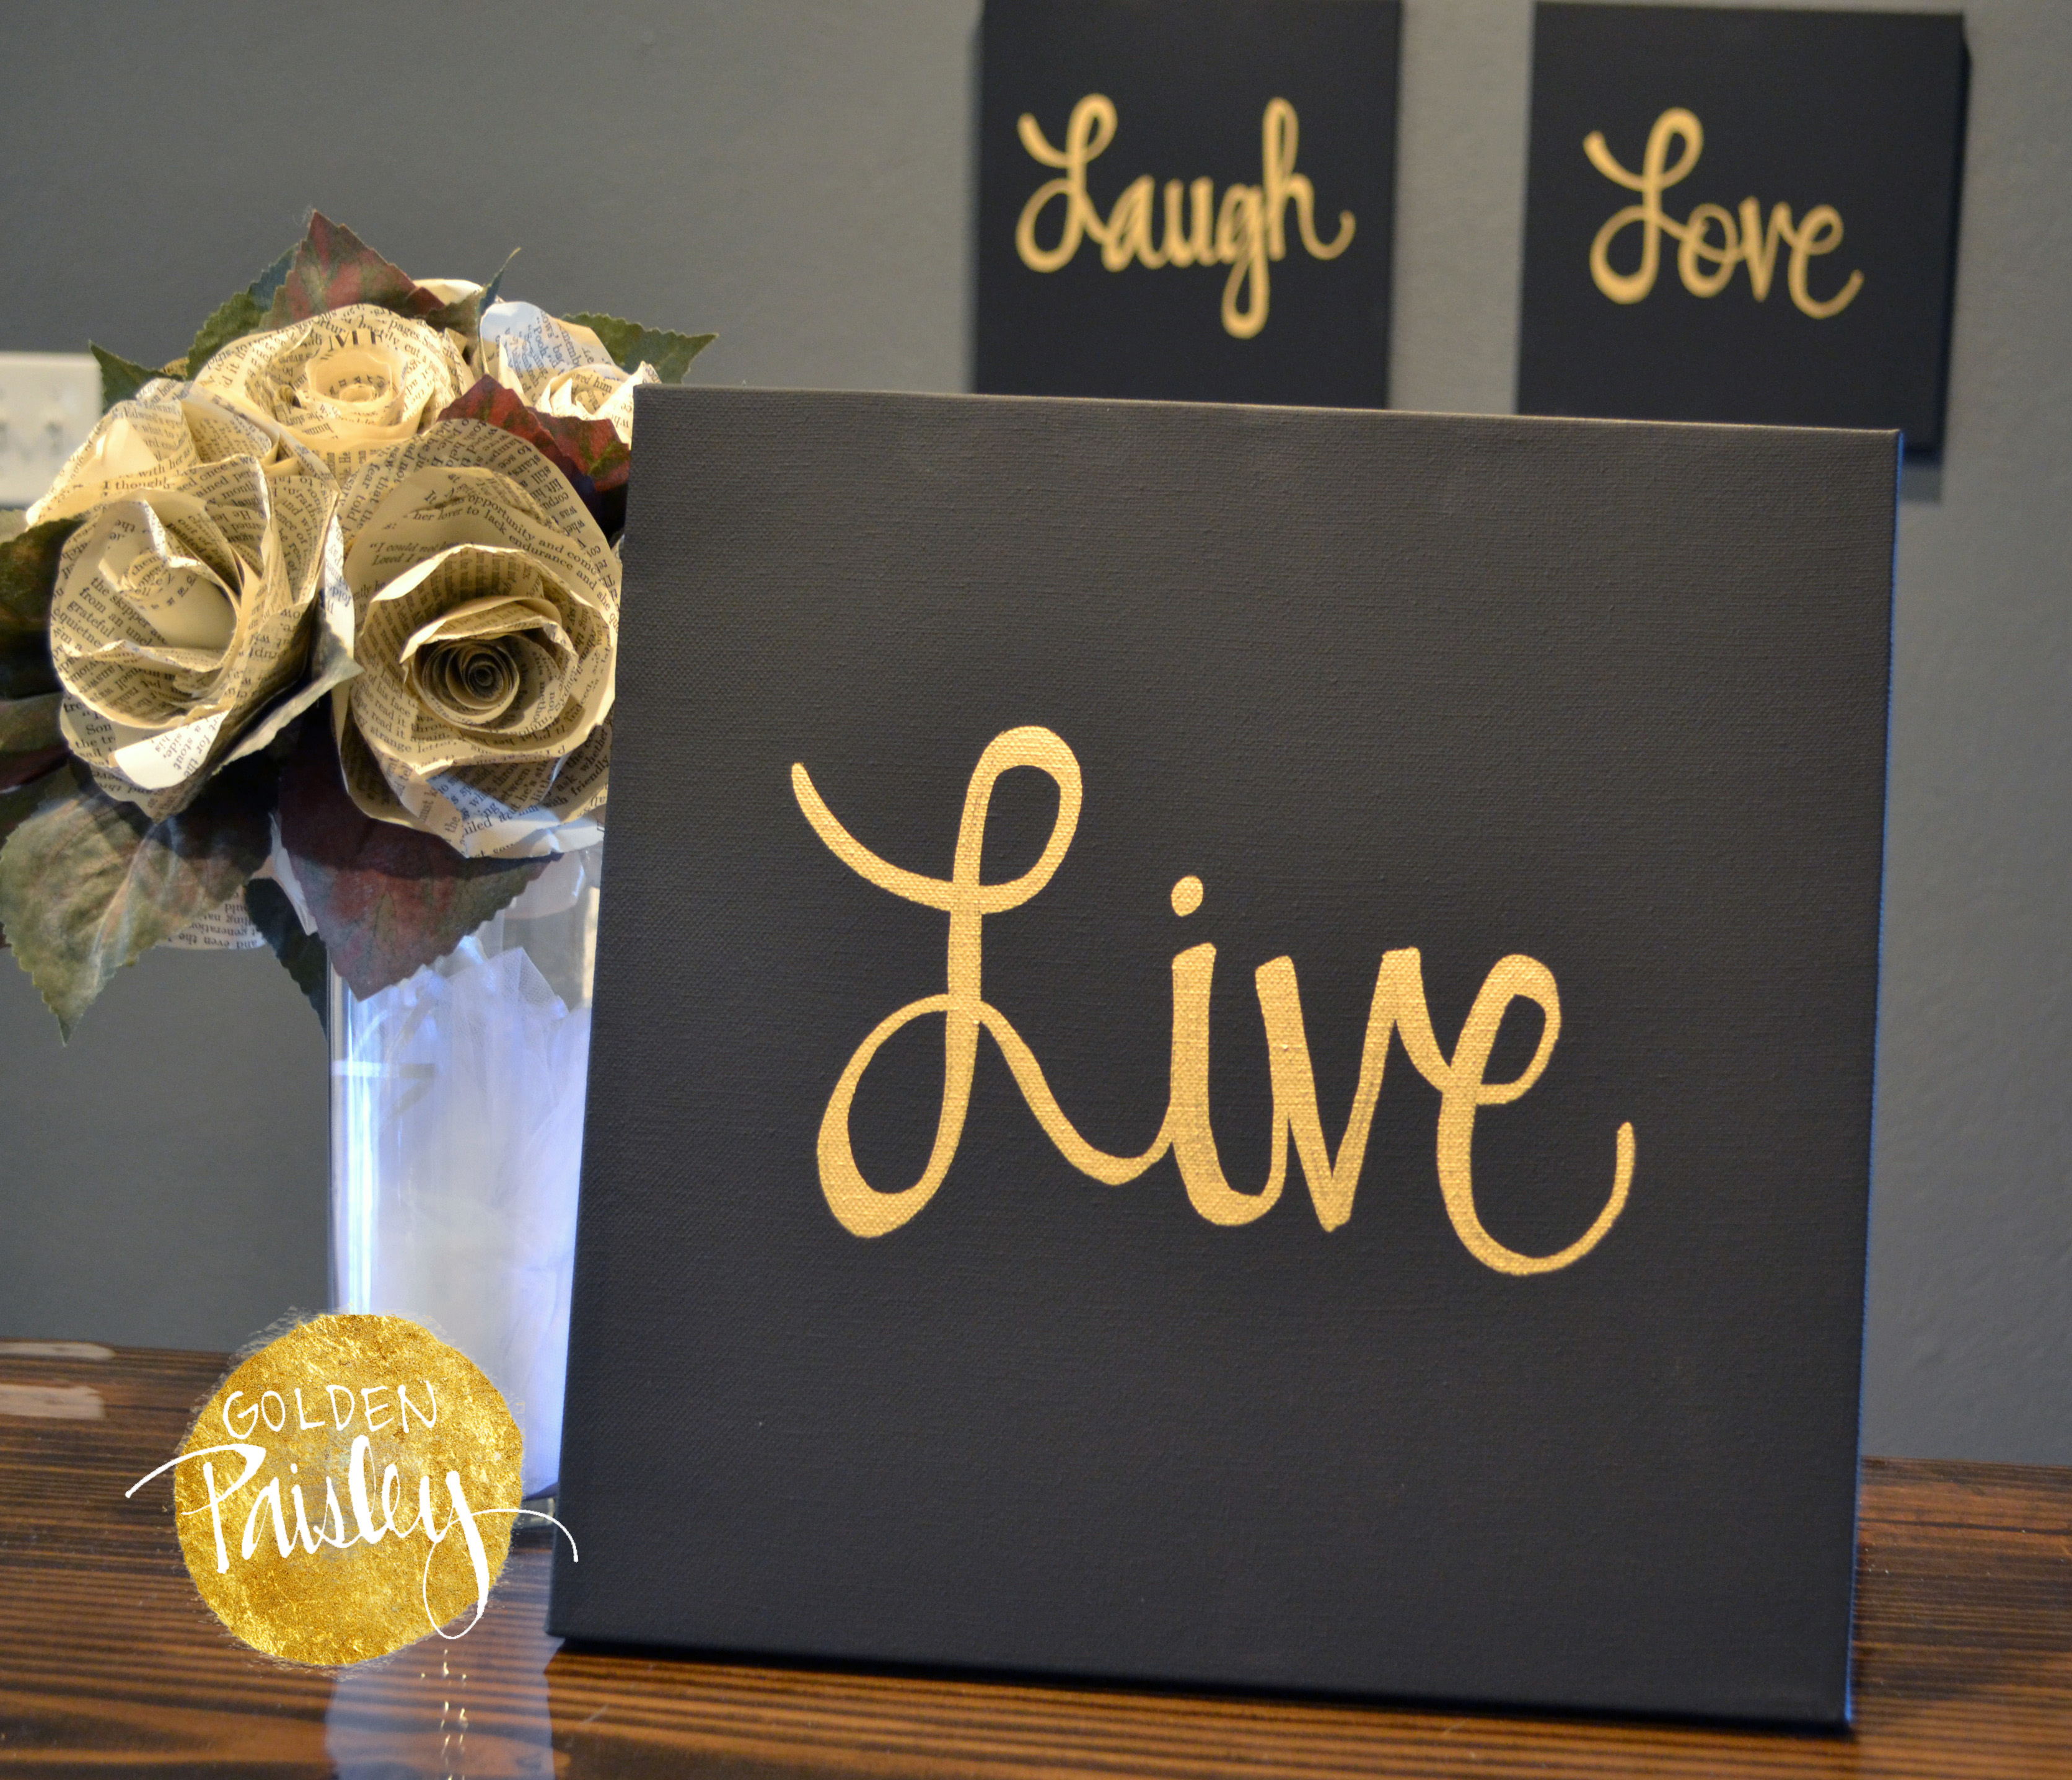 Live Laugh Love Black & Gold 3 Piece Wall Decor Set For Live Love Laugh 3 Piece Black Wall Decor Sets (View 7 of 30)